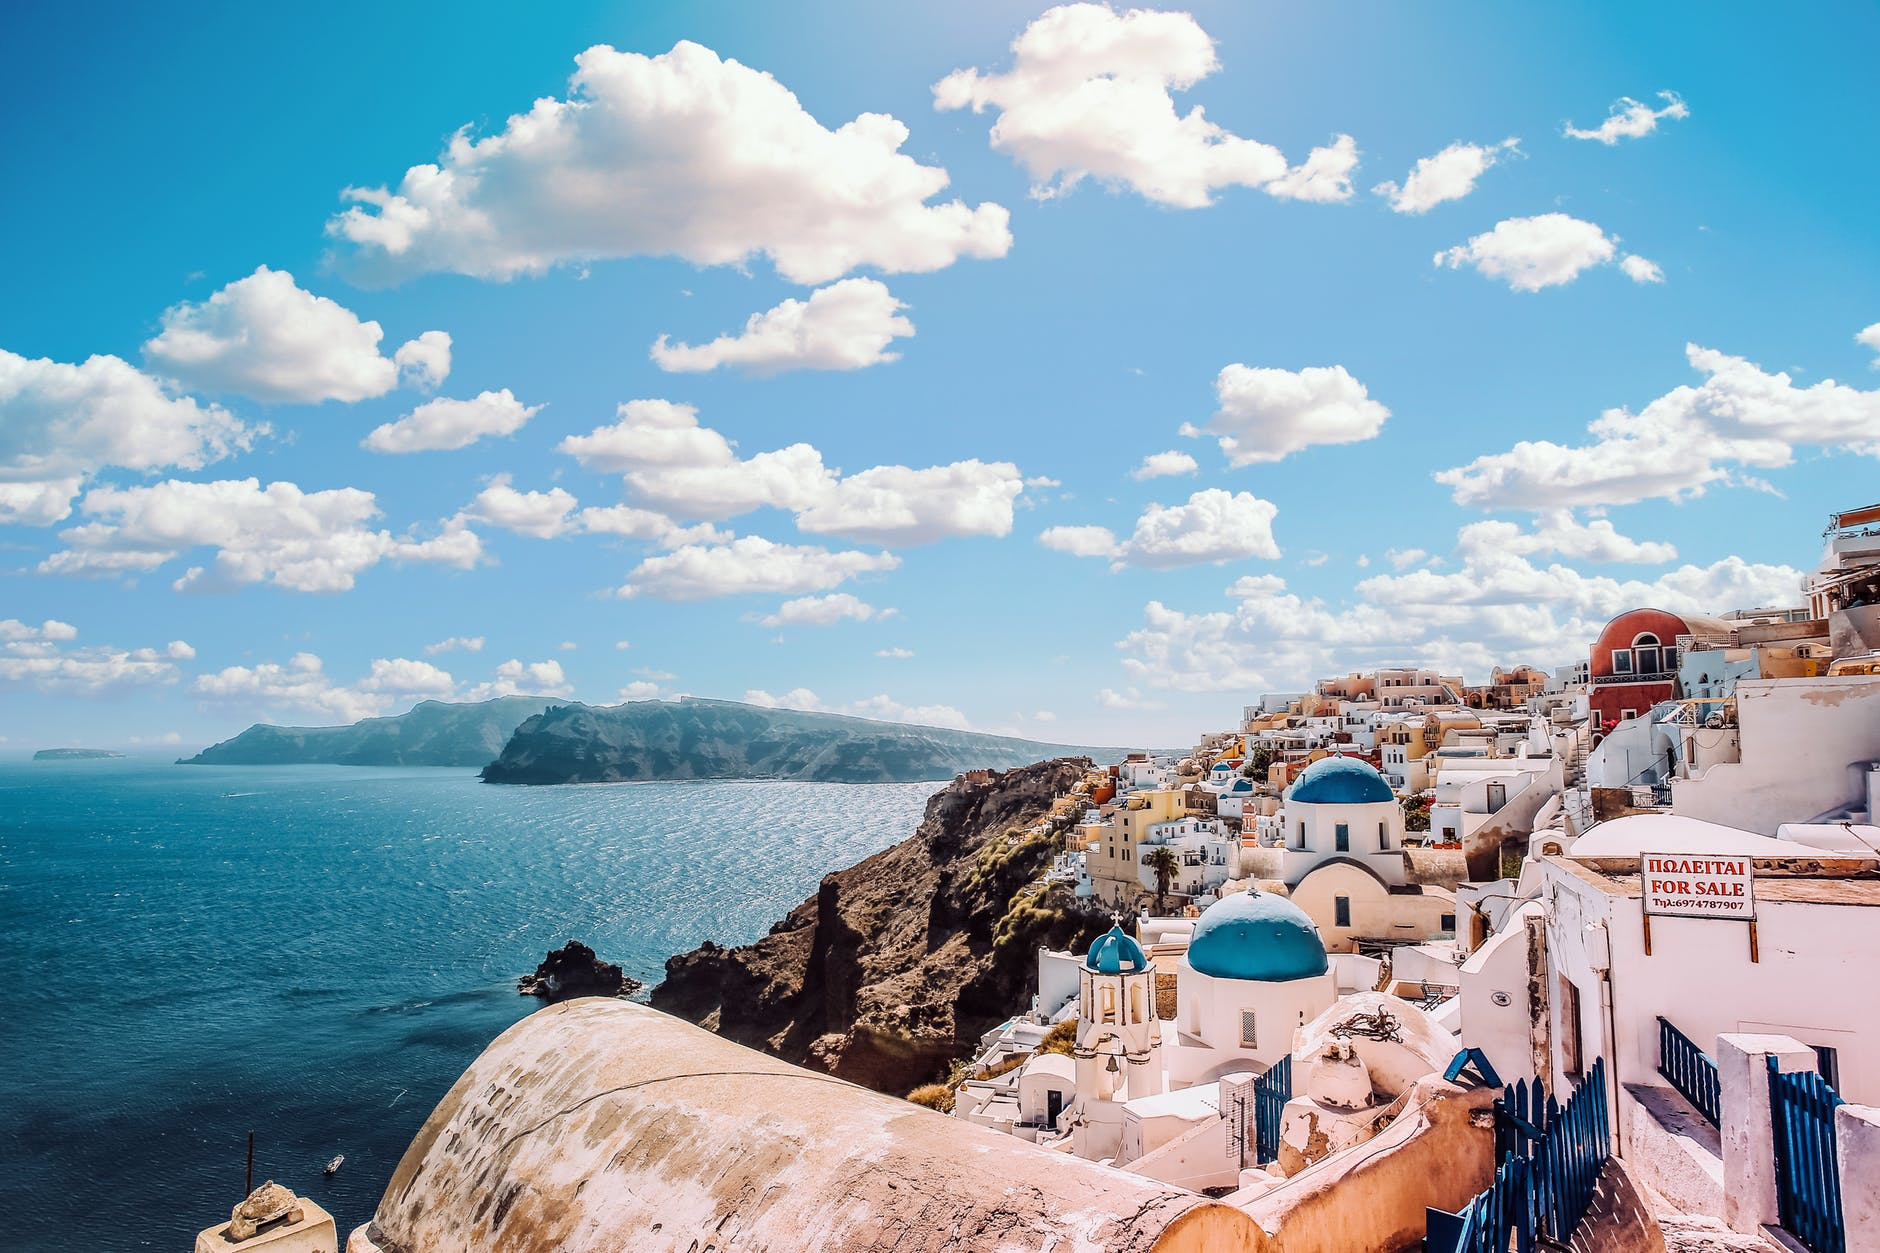 Greece comes in the INTERNATIONAL HONEYMOON DESTINATIONS